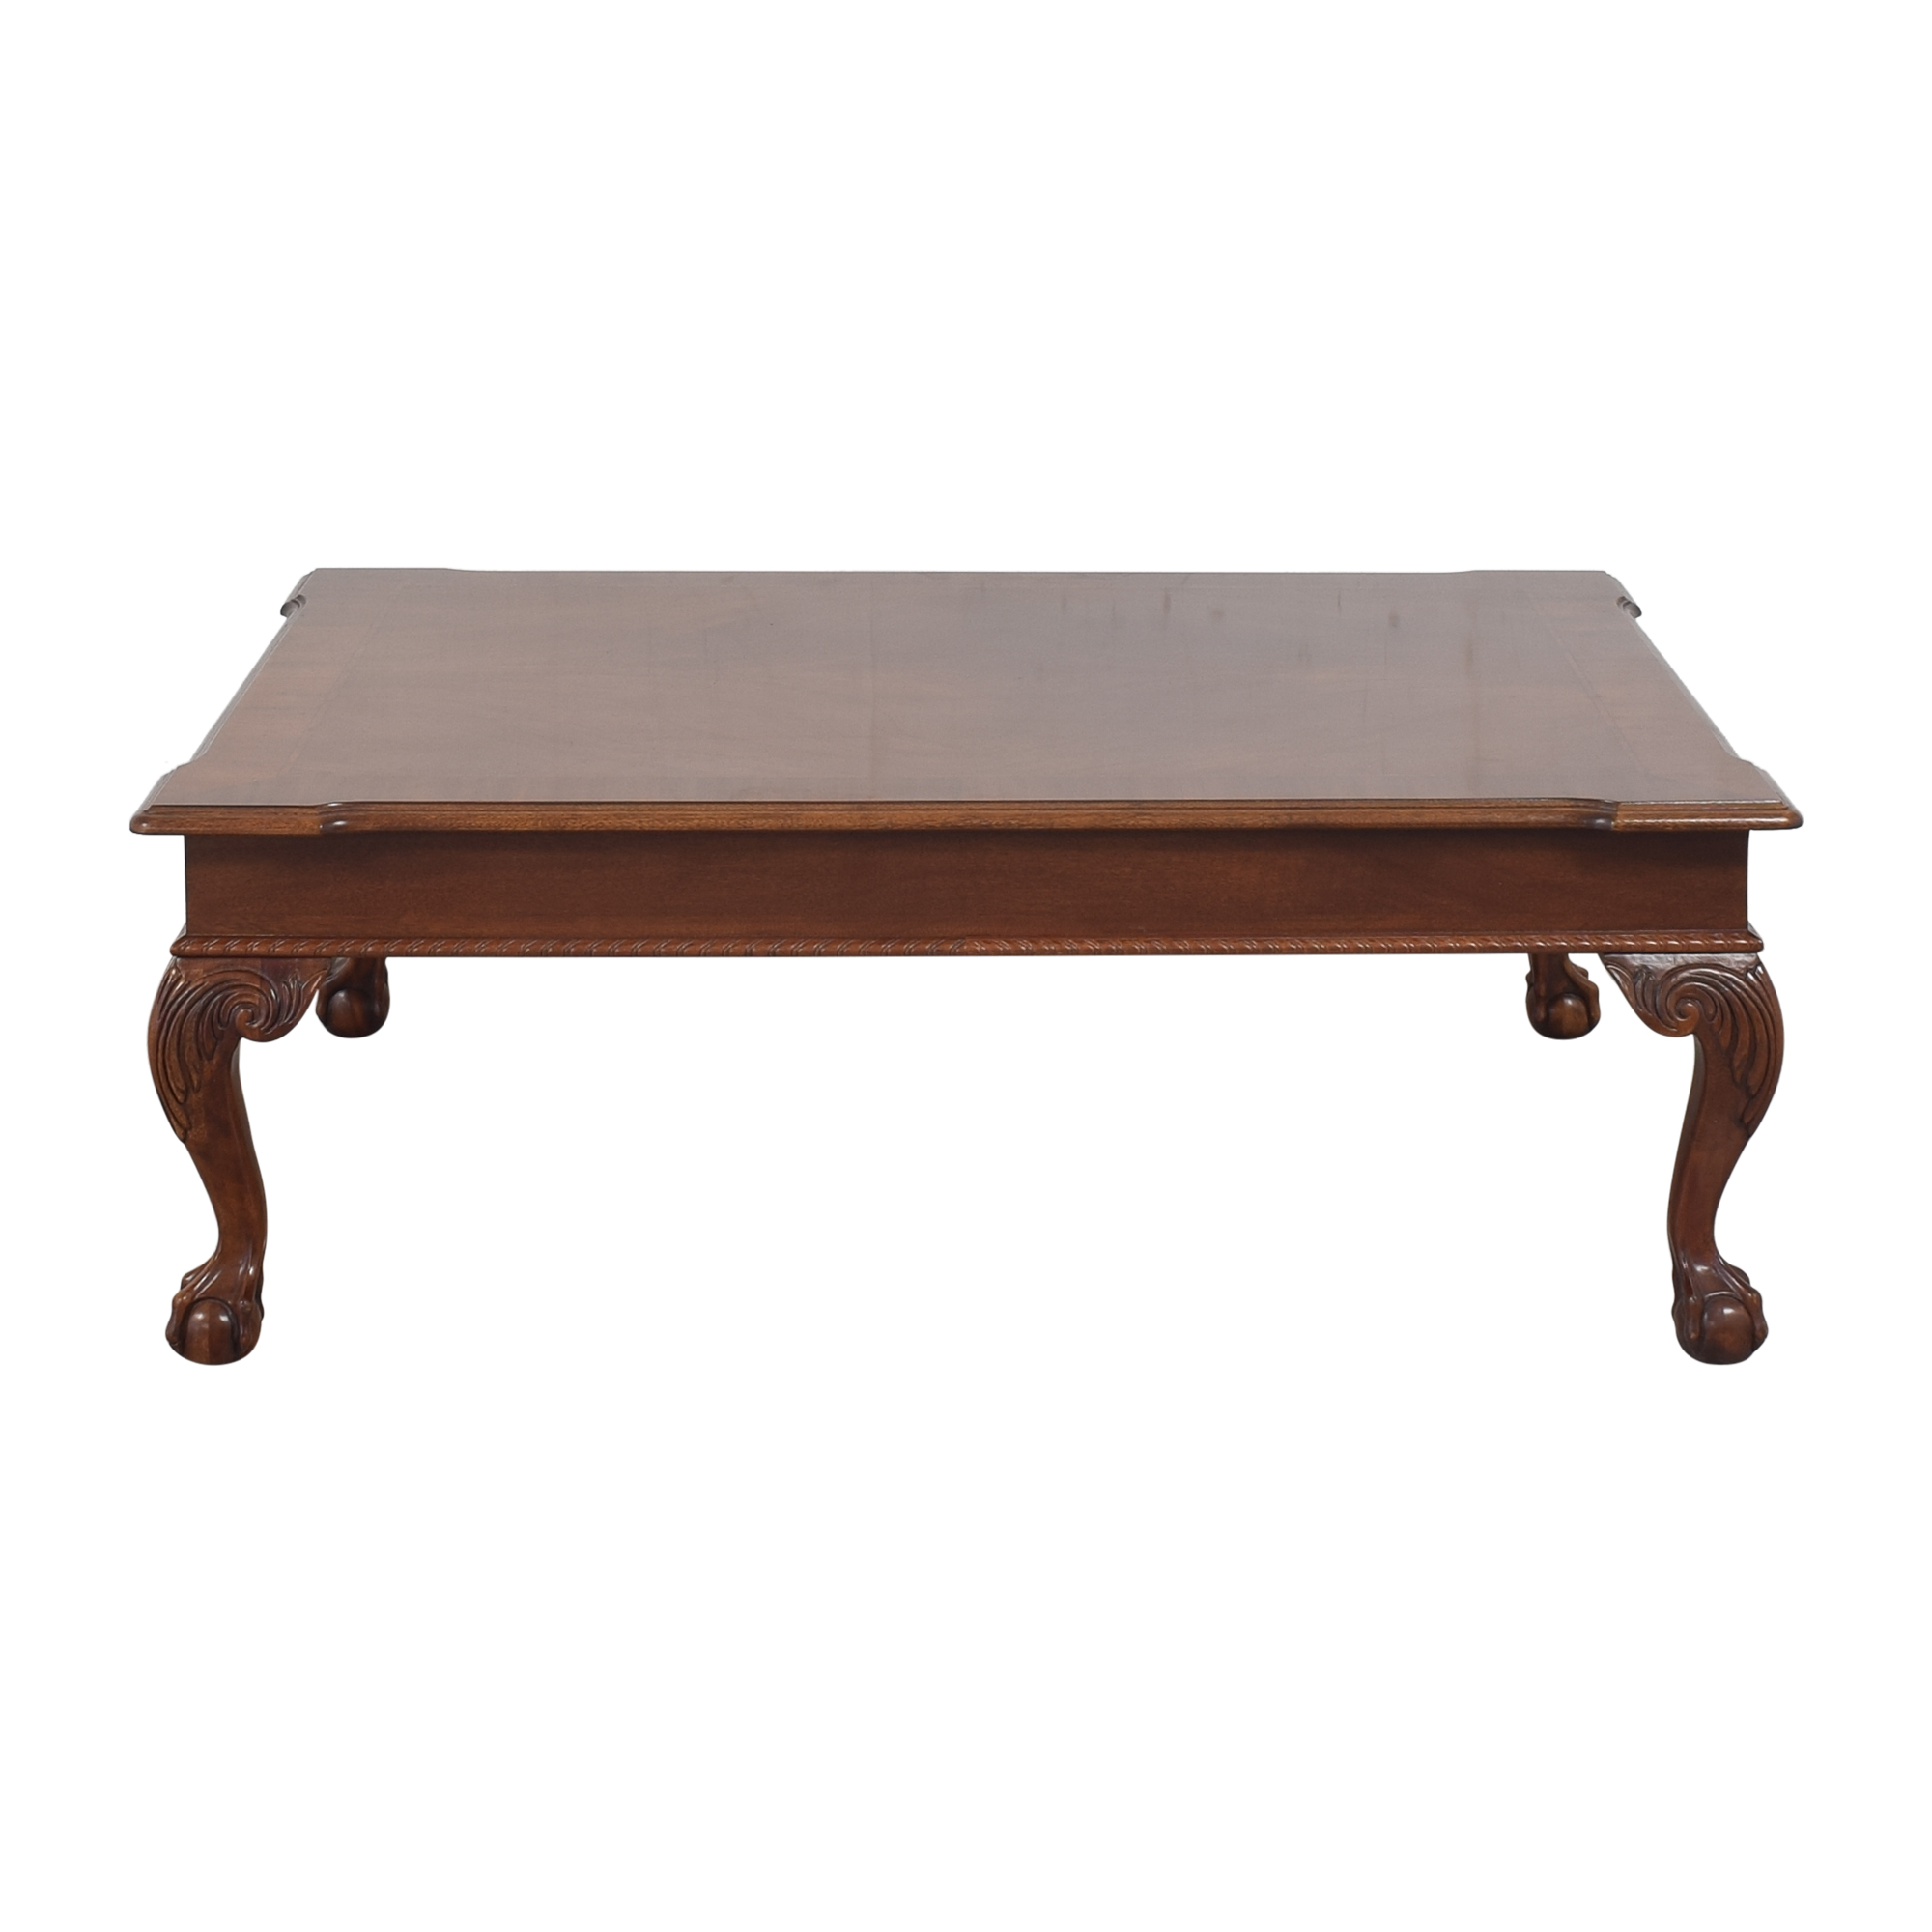 Ethan Allen Ethan Allen 18th Century Collection Coffee Table  ct